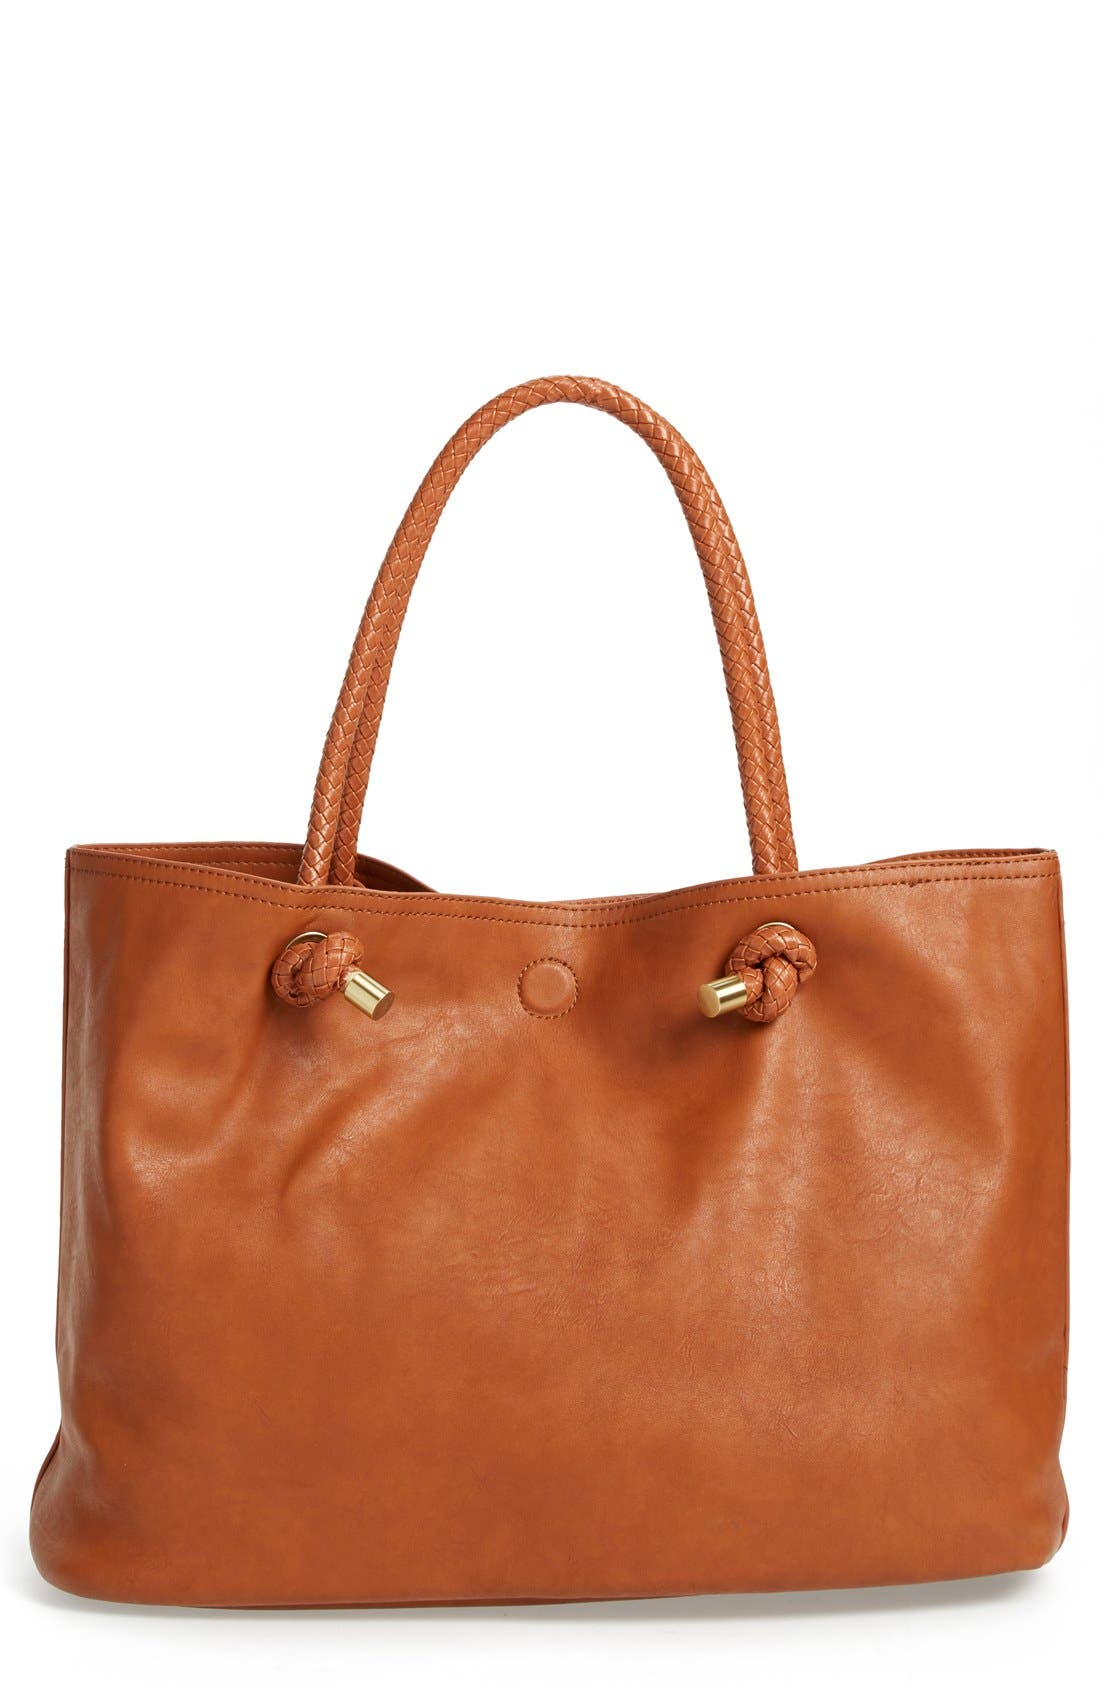 Alternate Image 1 Selected - Sole Society Braided Handle Faux Leather Tote